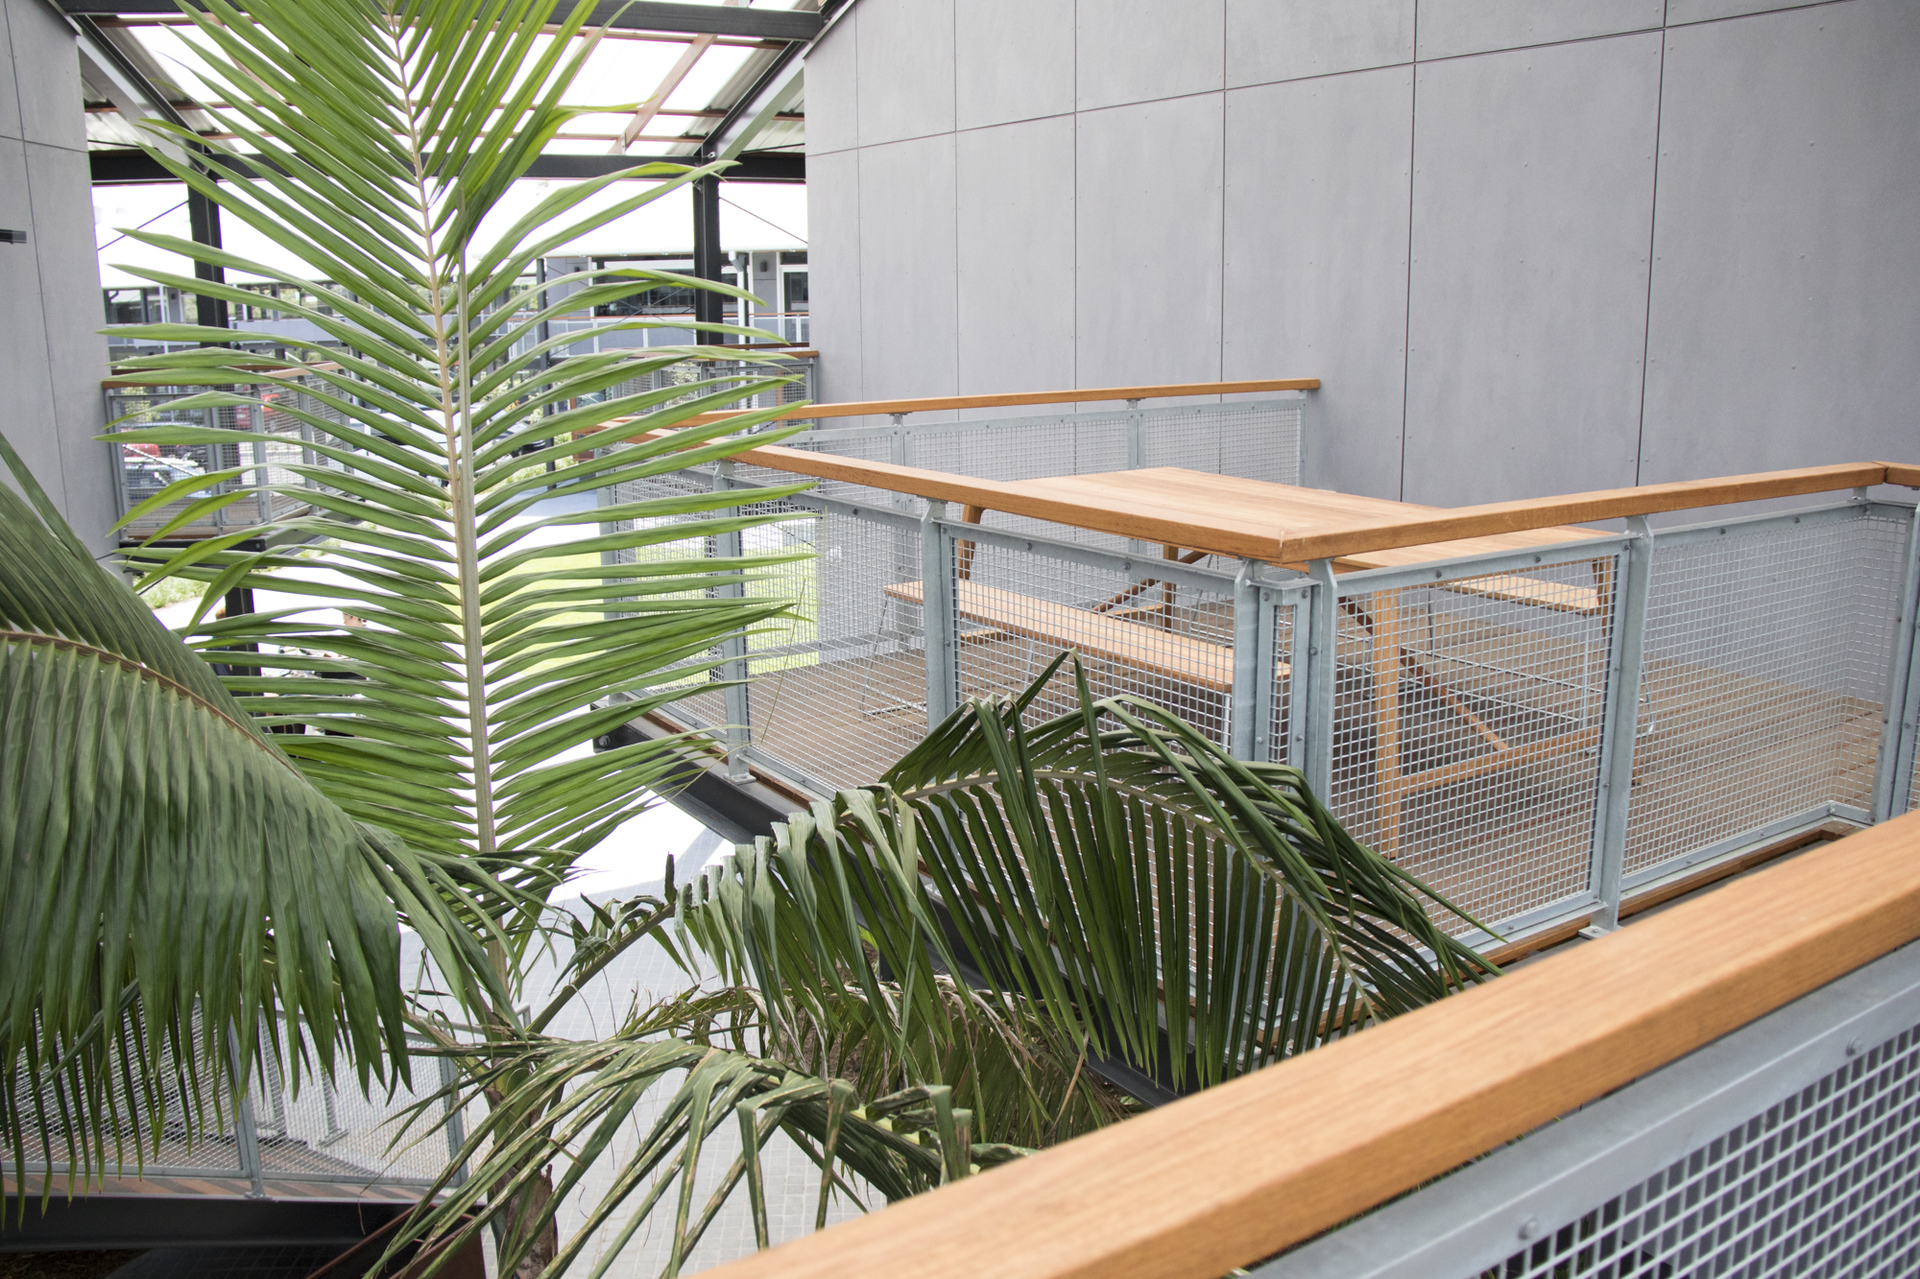 Habitat Byron Bay – Brand New Premium office and retail space in Byron Bay.